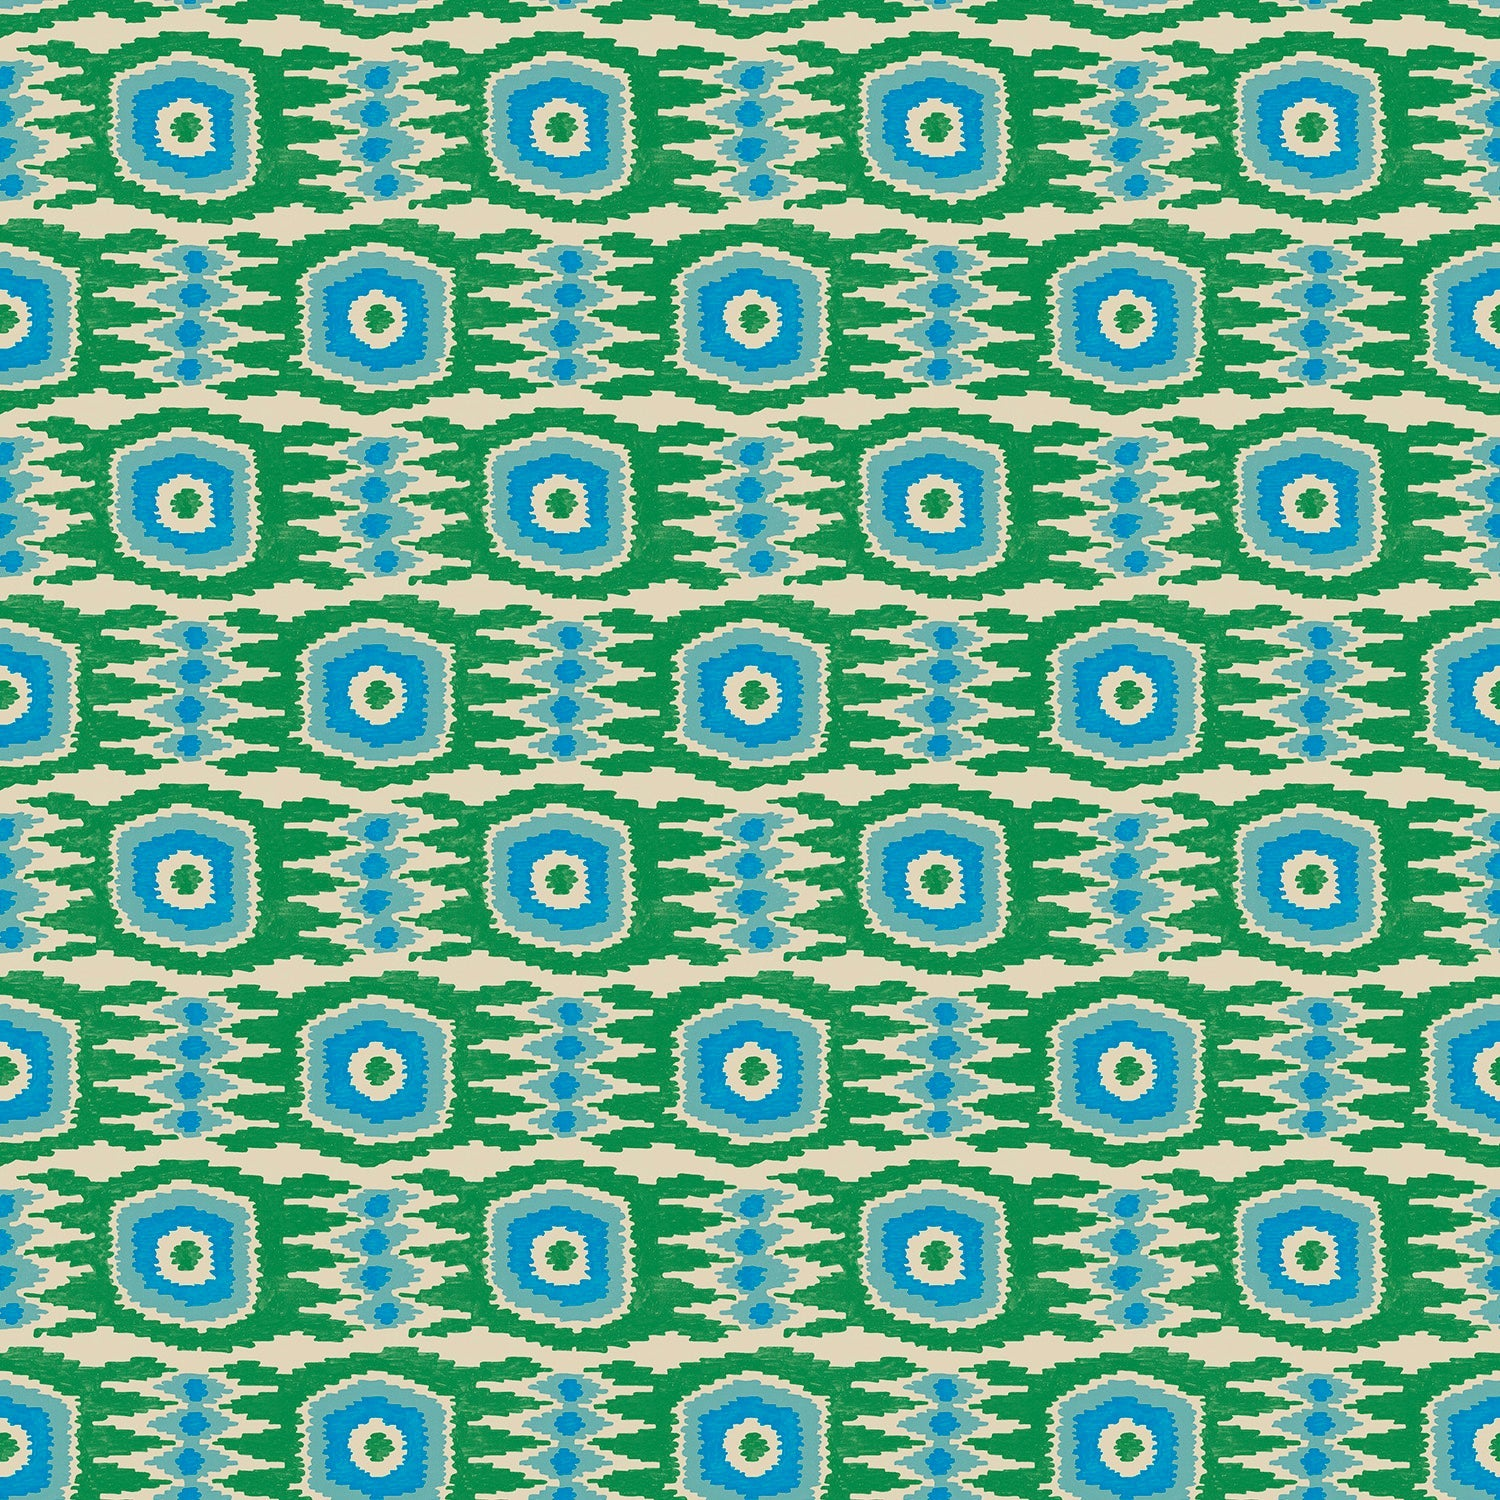 Fabric swatch of an abstract blue and green stain resistant velvet fabric for curtains and upholstery